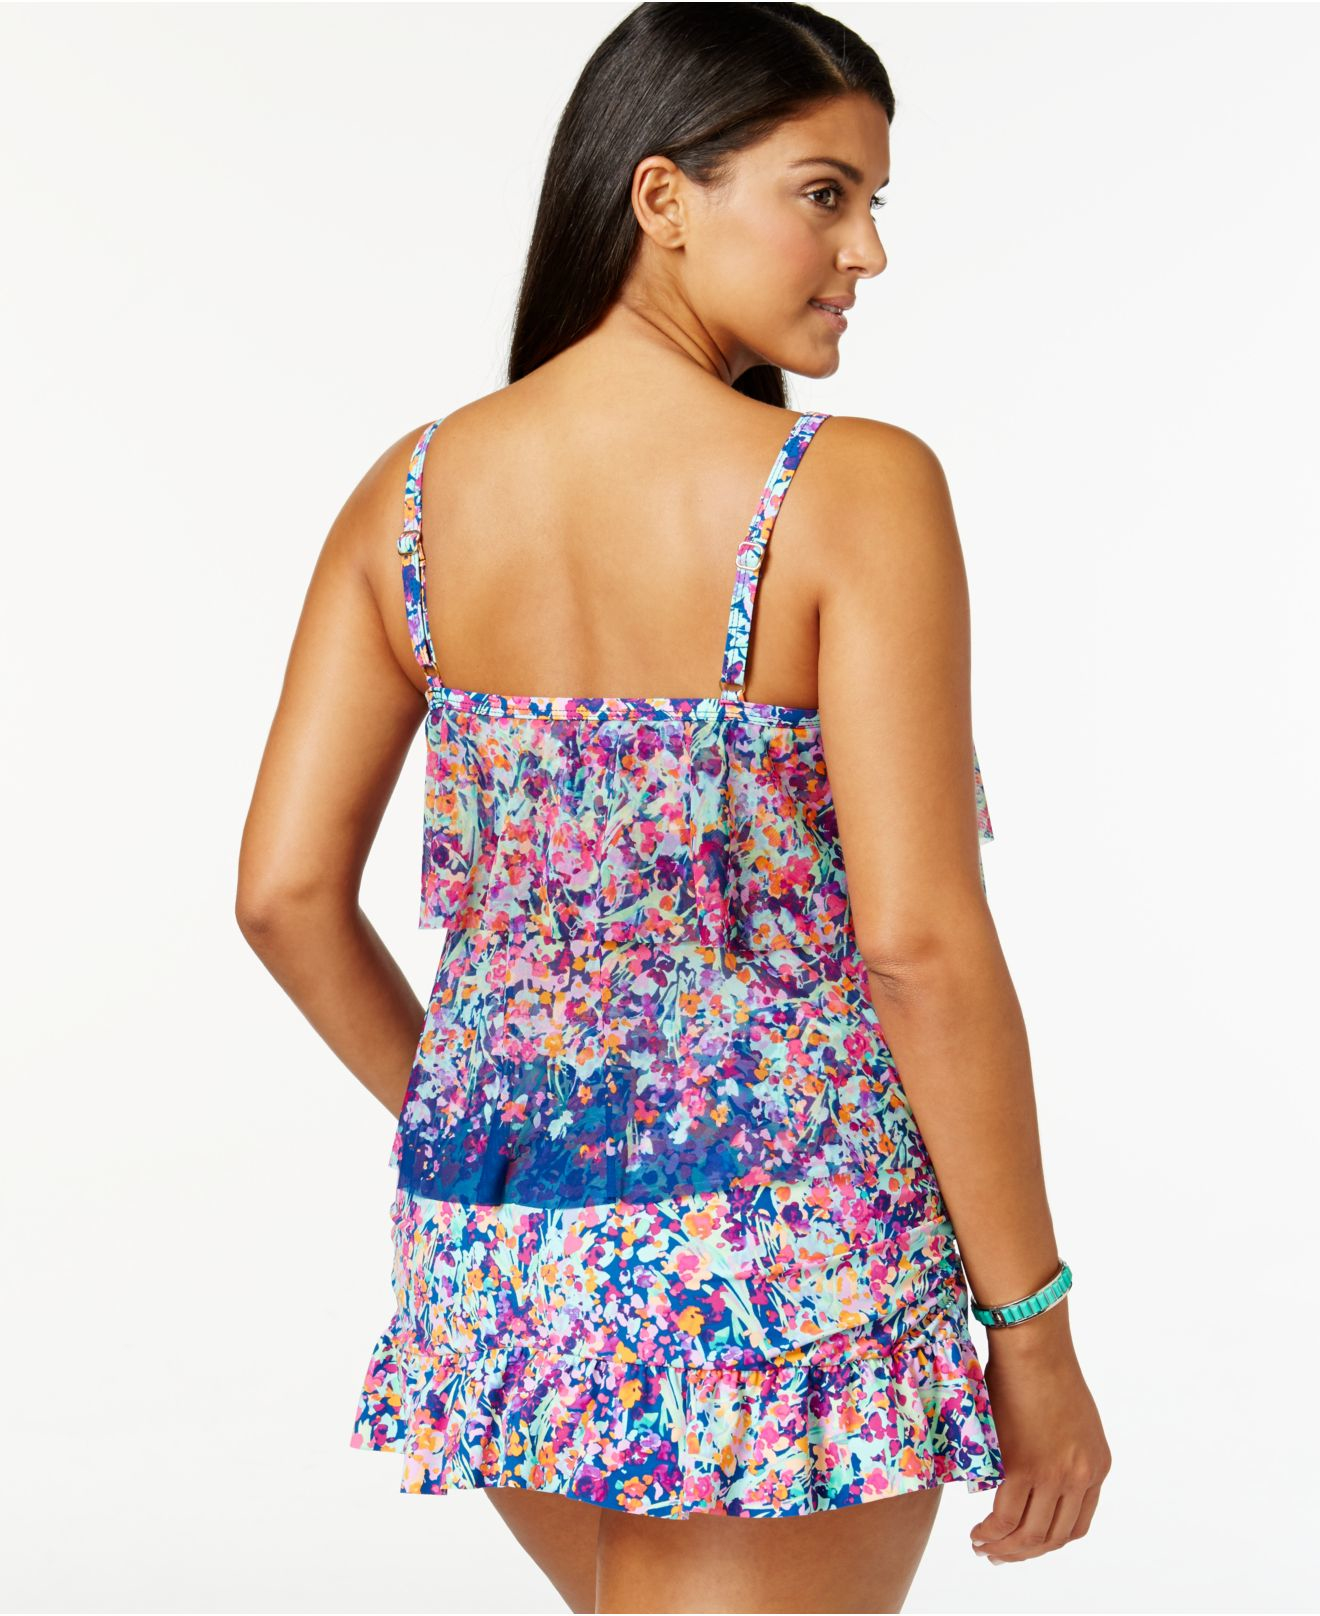 kenneth cole reaction plus size tiered mesh tankini top in blue | lyst